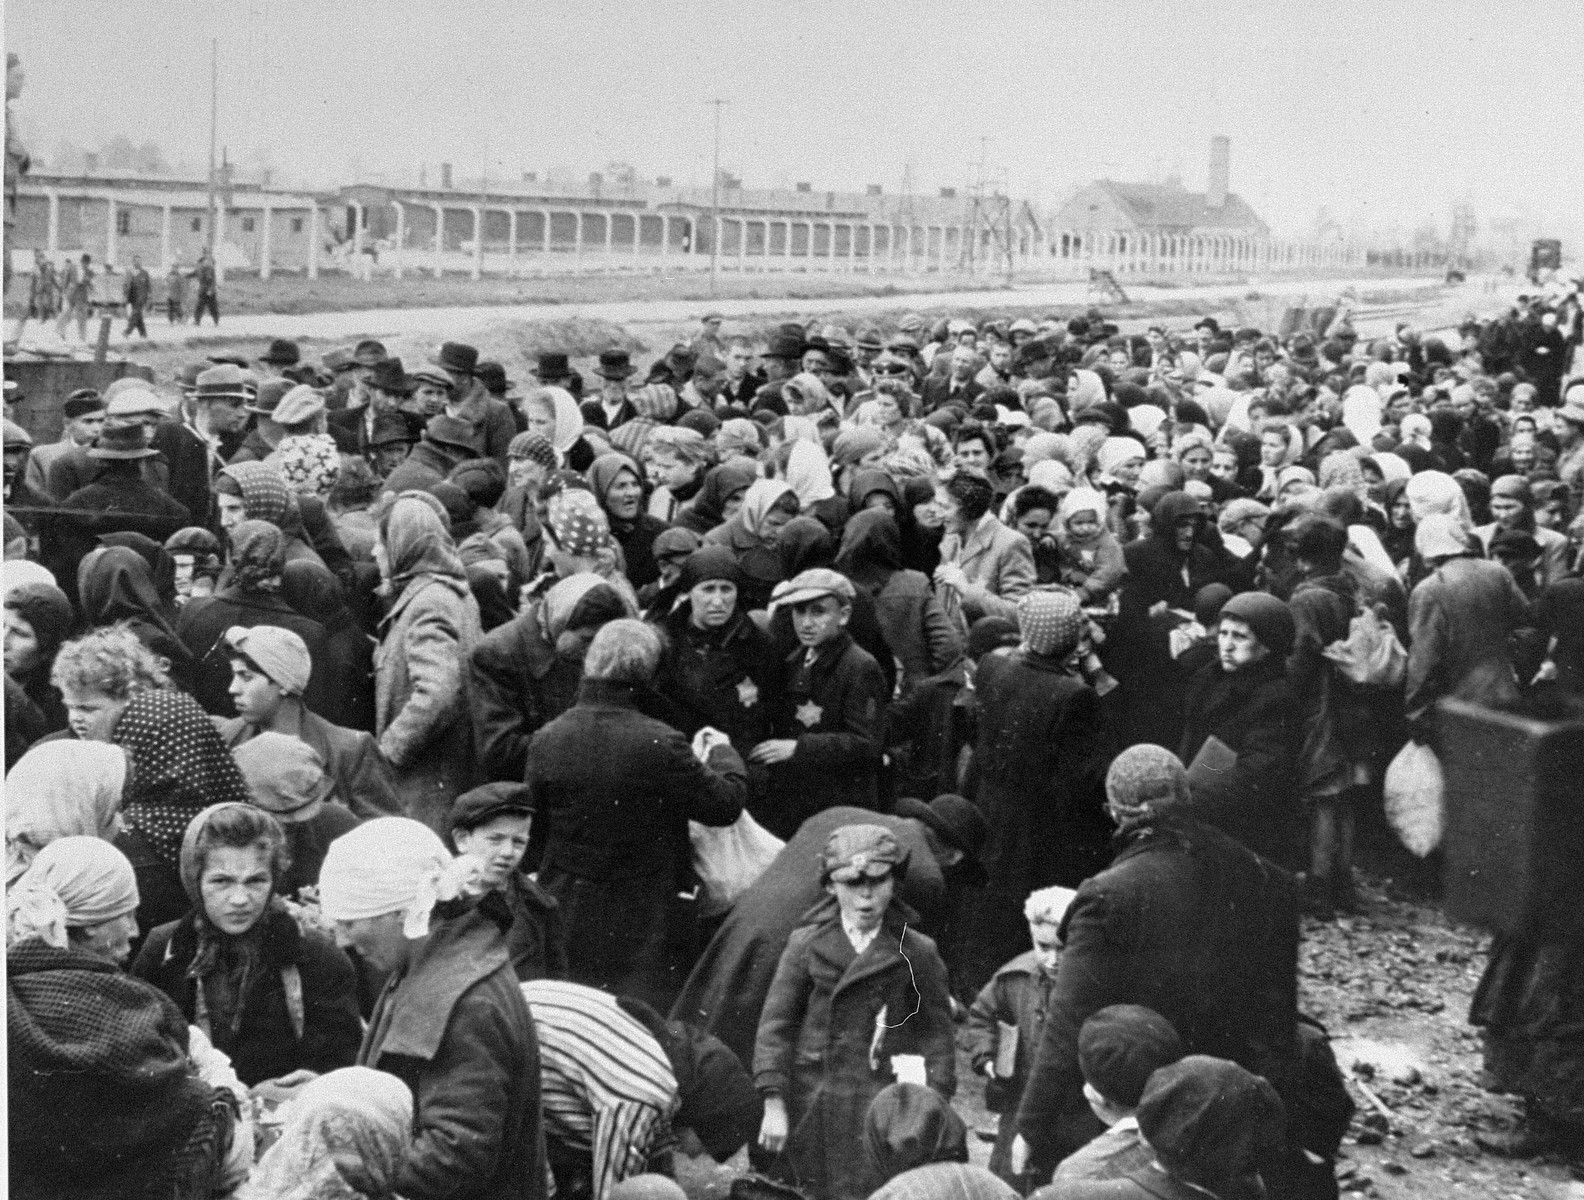 Jews from Subcarpathian Rus sit in a large group on one side of the ramp at Auschwitz-Birkenau before undergoing the selection process.   One of the crematoria is visible in the distance on the right.